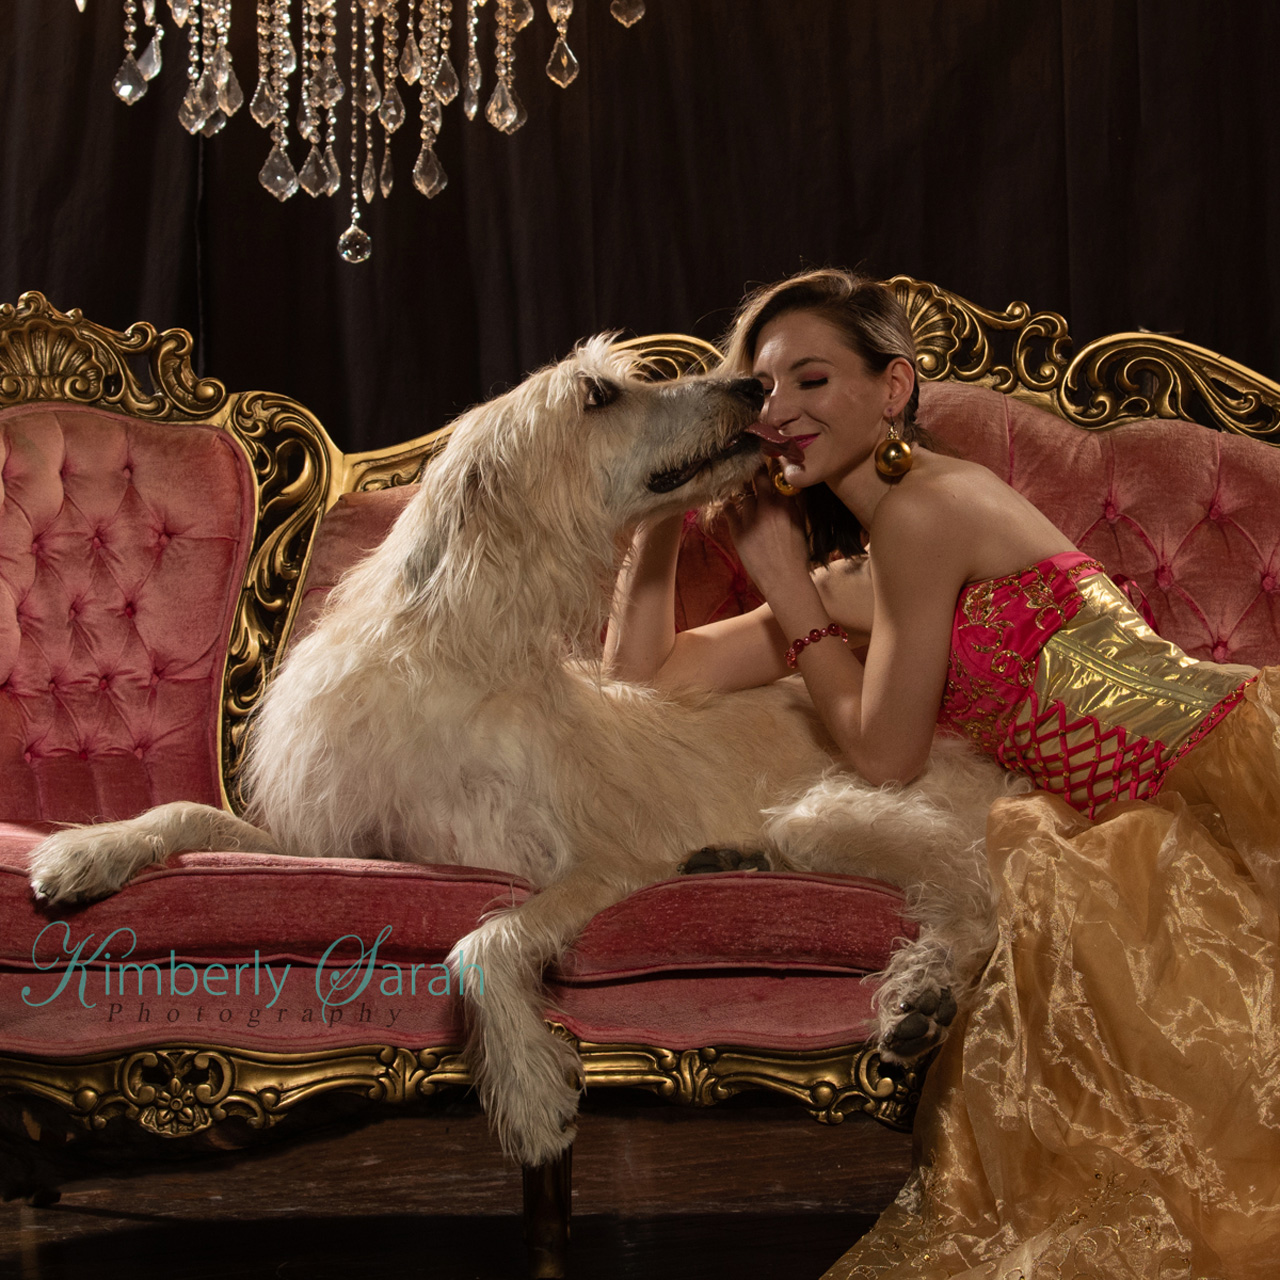 kimberly sarah photography, dog photography, outtakes, bts, puppy love, irish wolfhound, kisses, editorial fashion